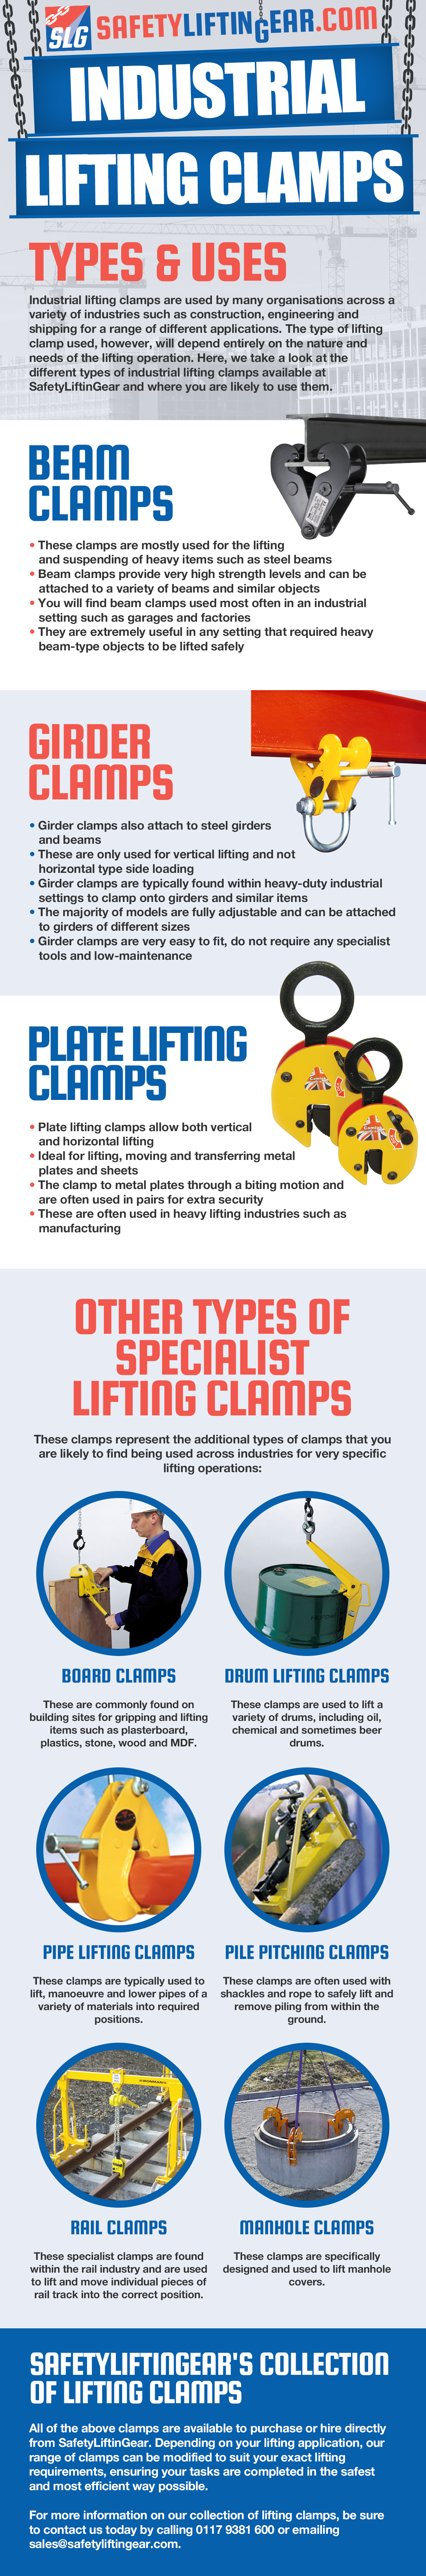 Industrial Lifting Clamps Infographic